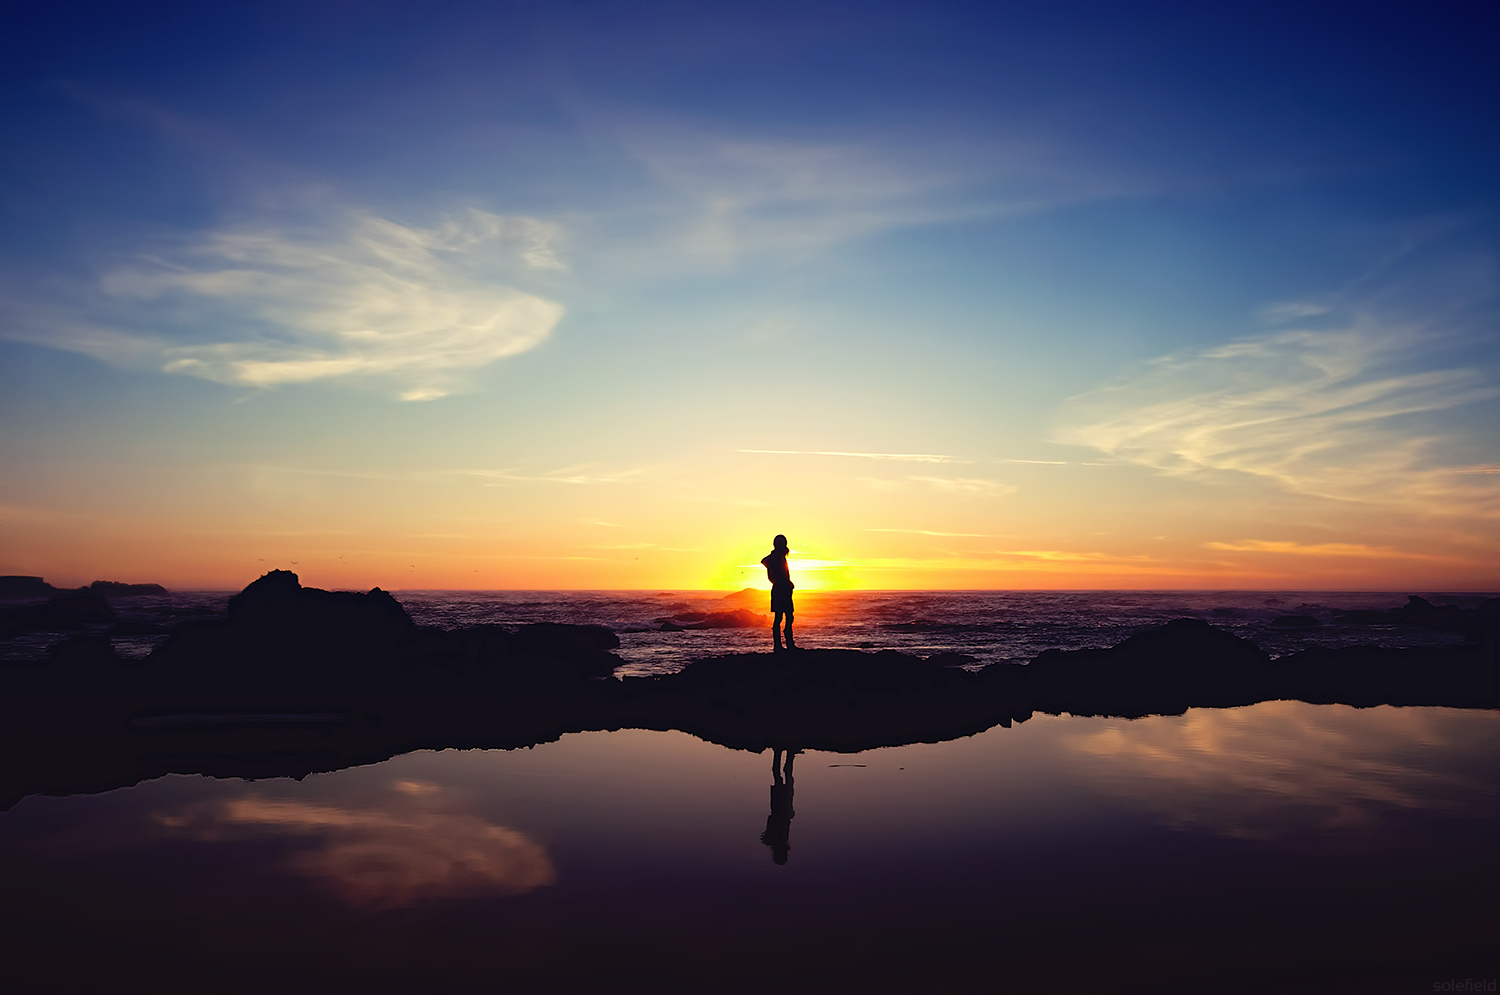 Silhouette of woman watching sunset over ocean